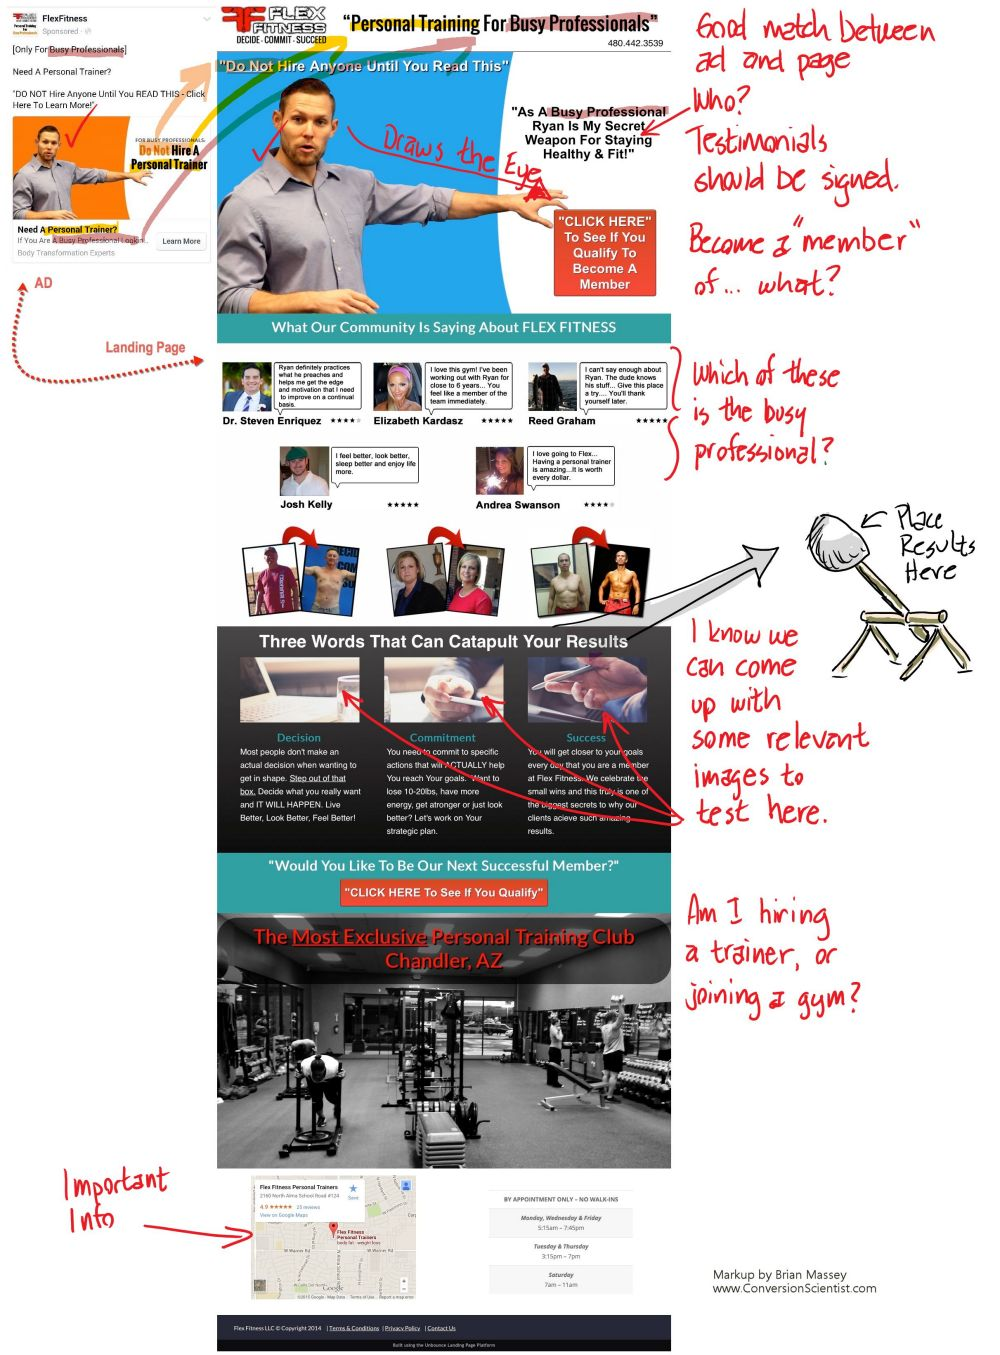 Notes from Brian Massey's review of Flex Fitness landing page.